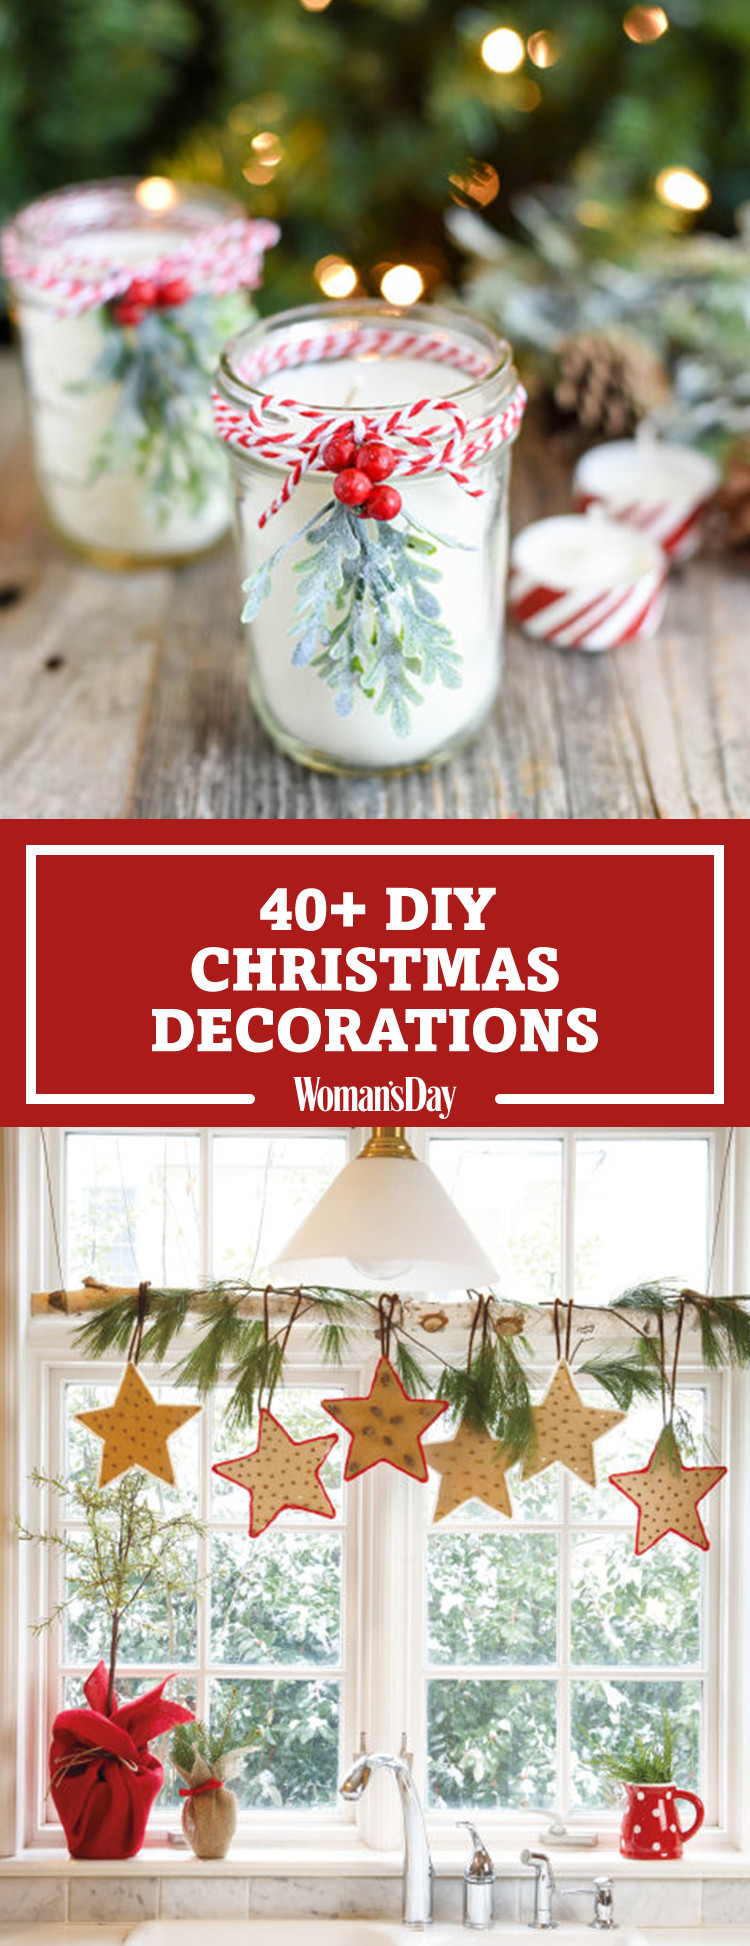 Best ideas about DIY Christmas Decor Ideas . Save or Pin 47 Easy DIY Christmas Decorations Homemade Ideas for Now.